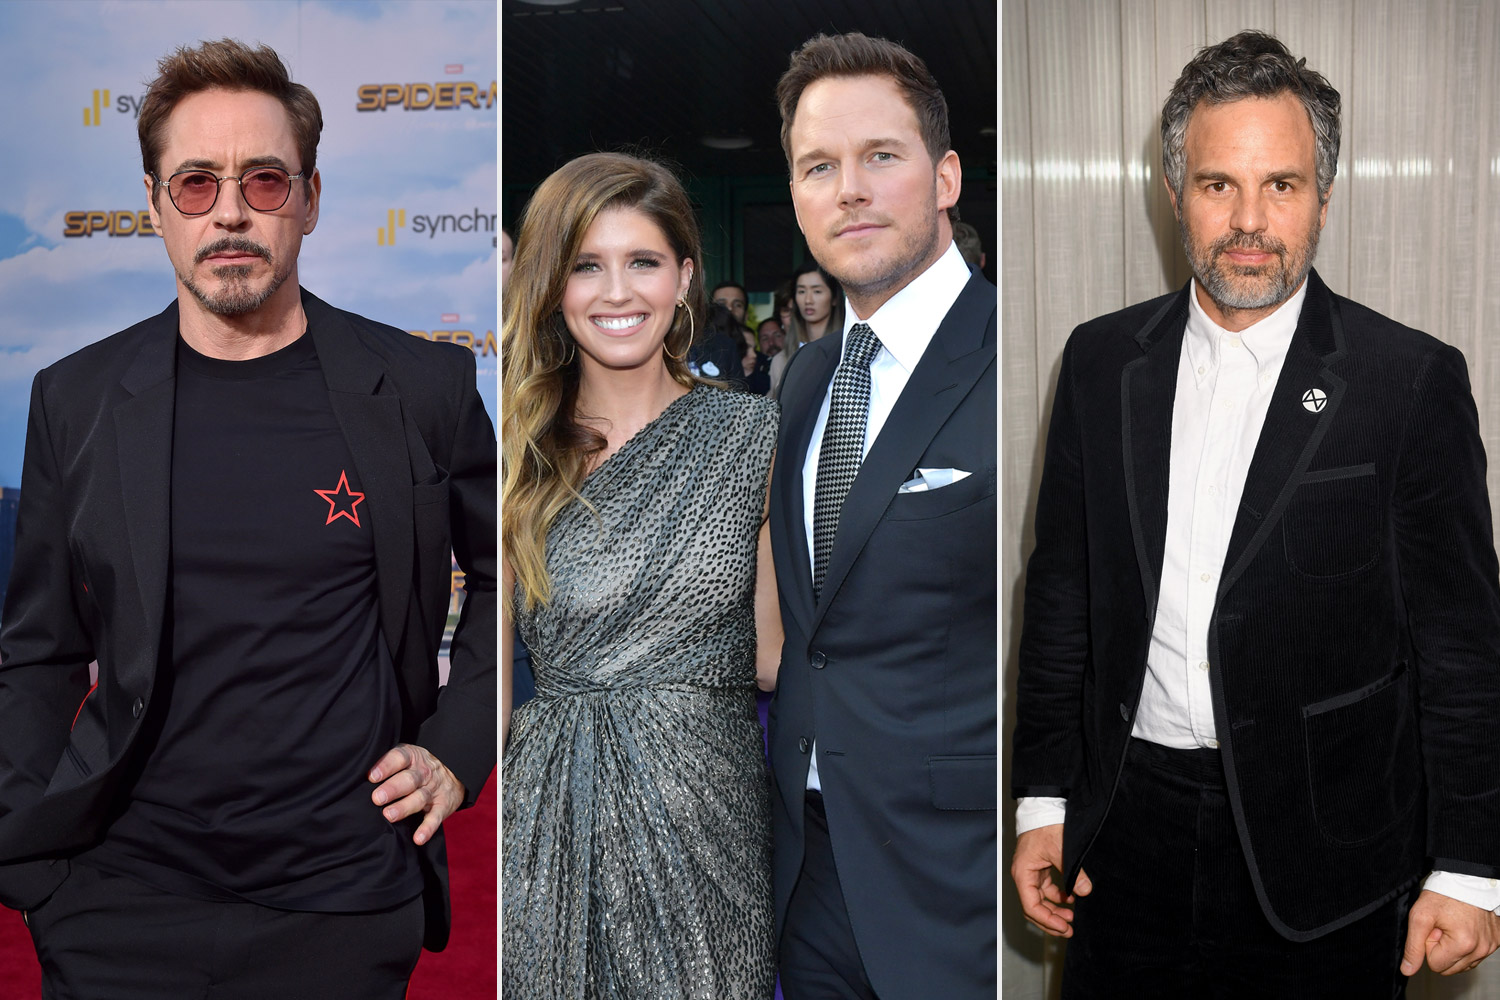 Katherine Schwarzenegger, Robert Downey Jr and Mark Ruffalo, Chris Pratt